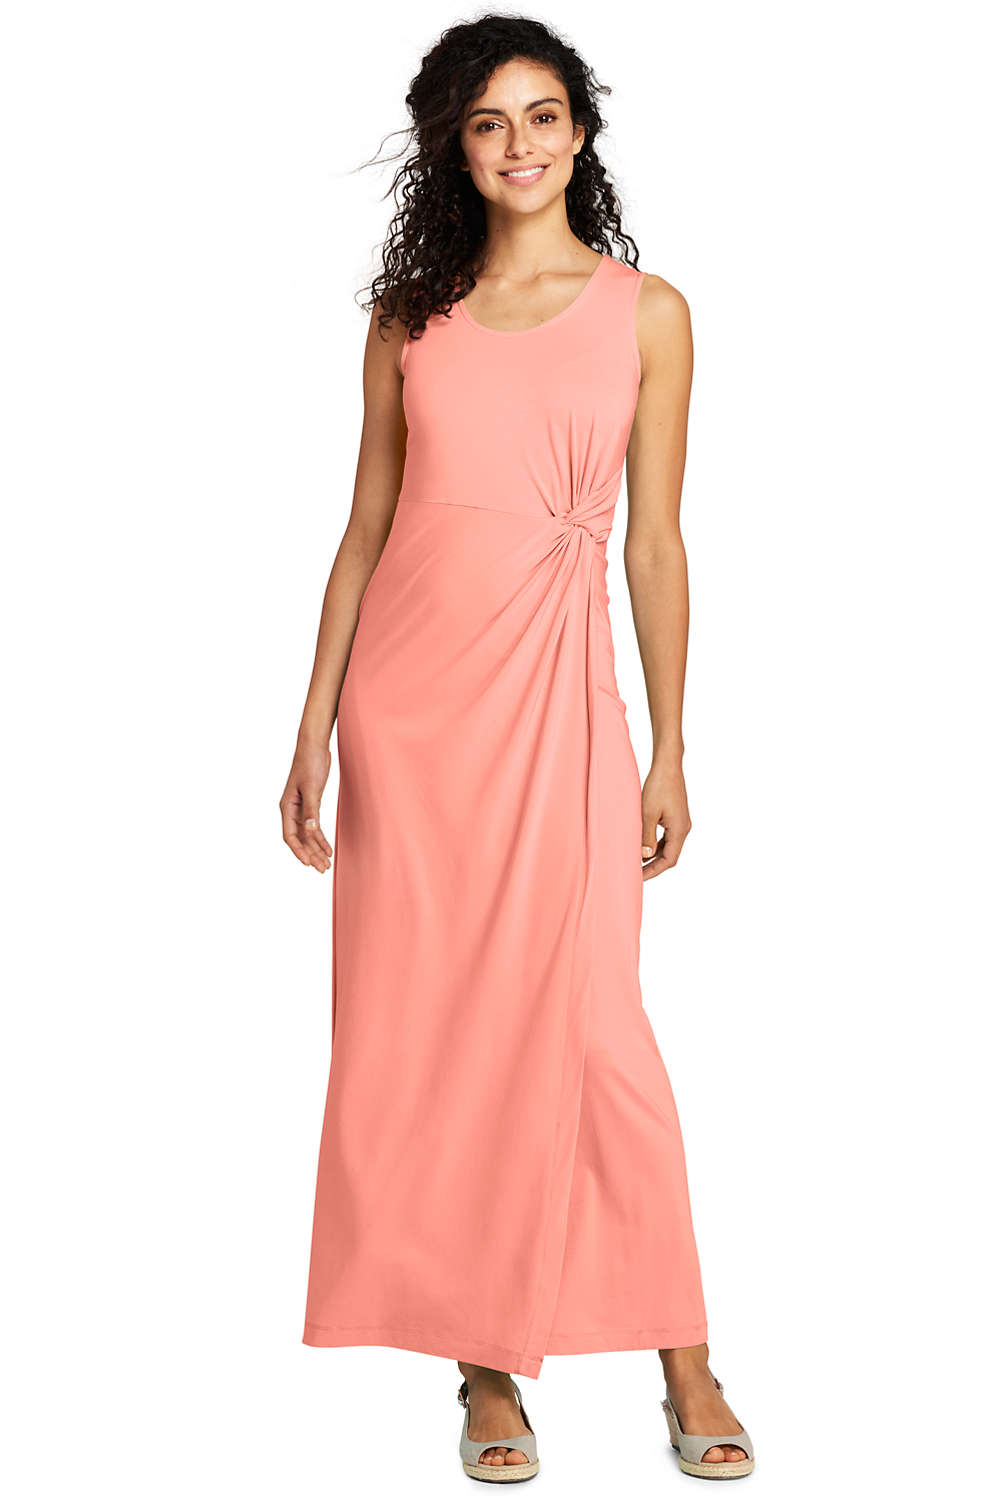 dbfabed9904 Women s Sleeveless Knot Waist Maxi Dress from Lands  End